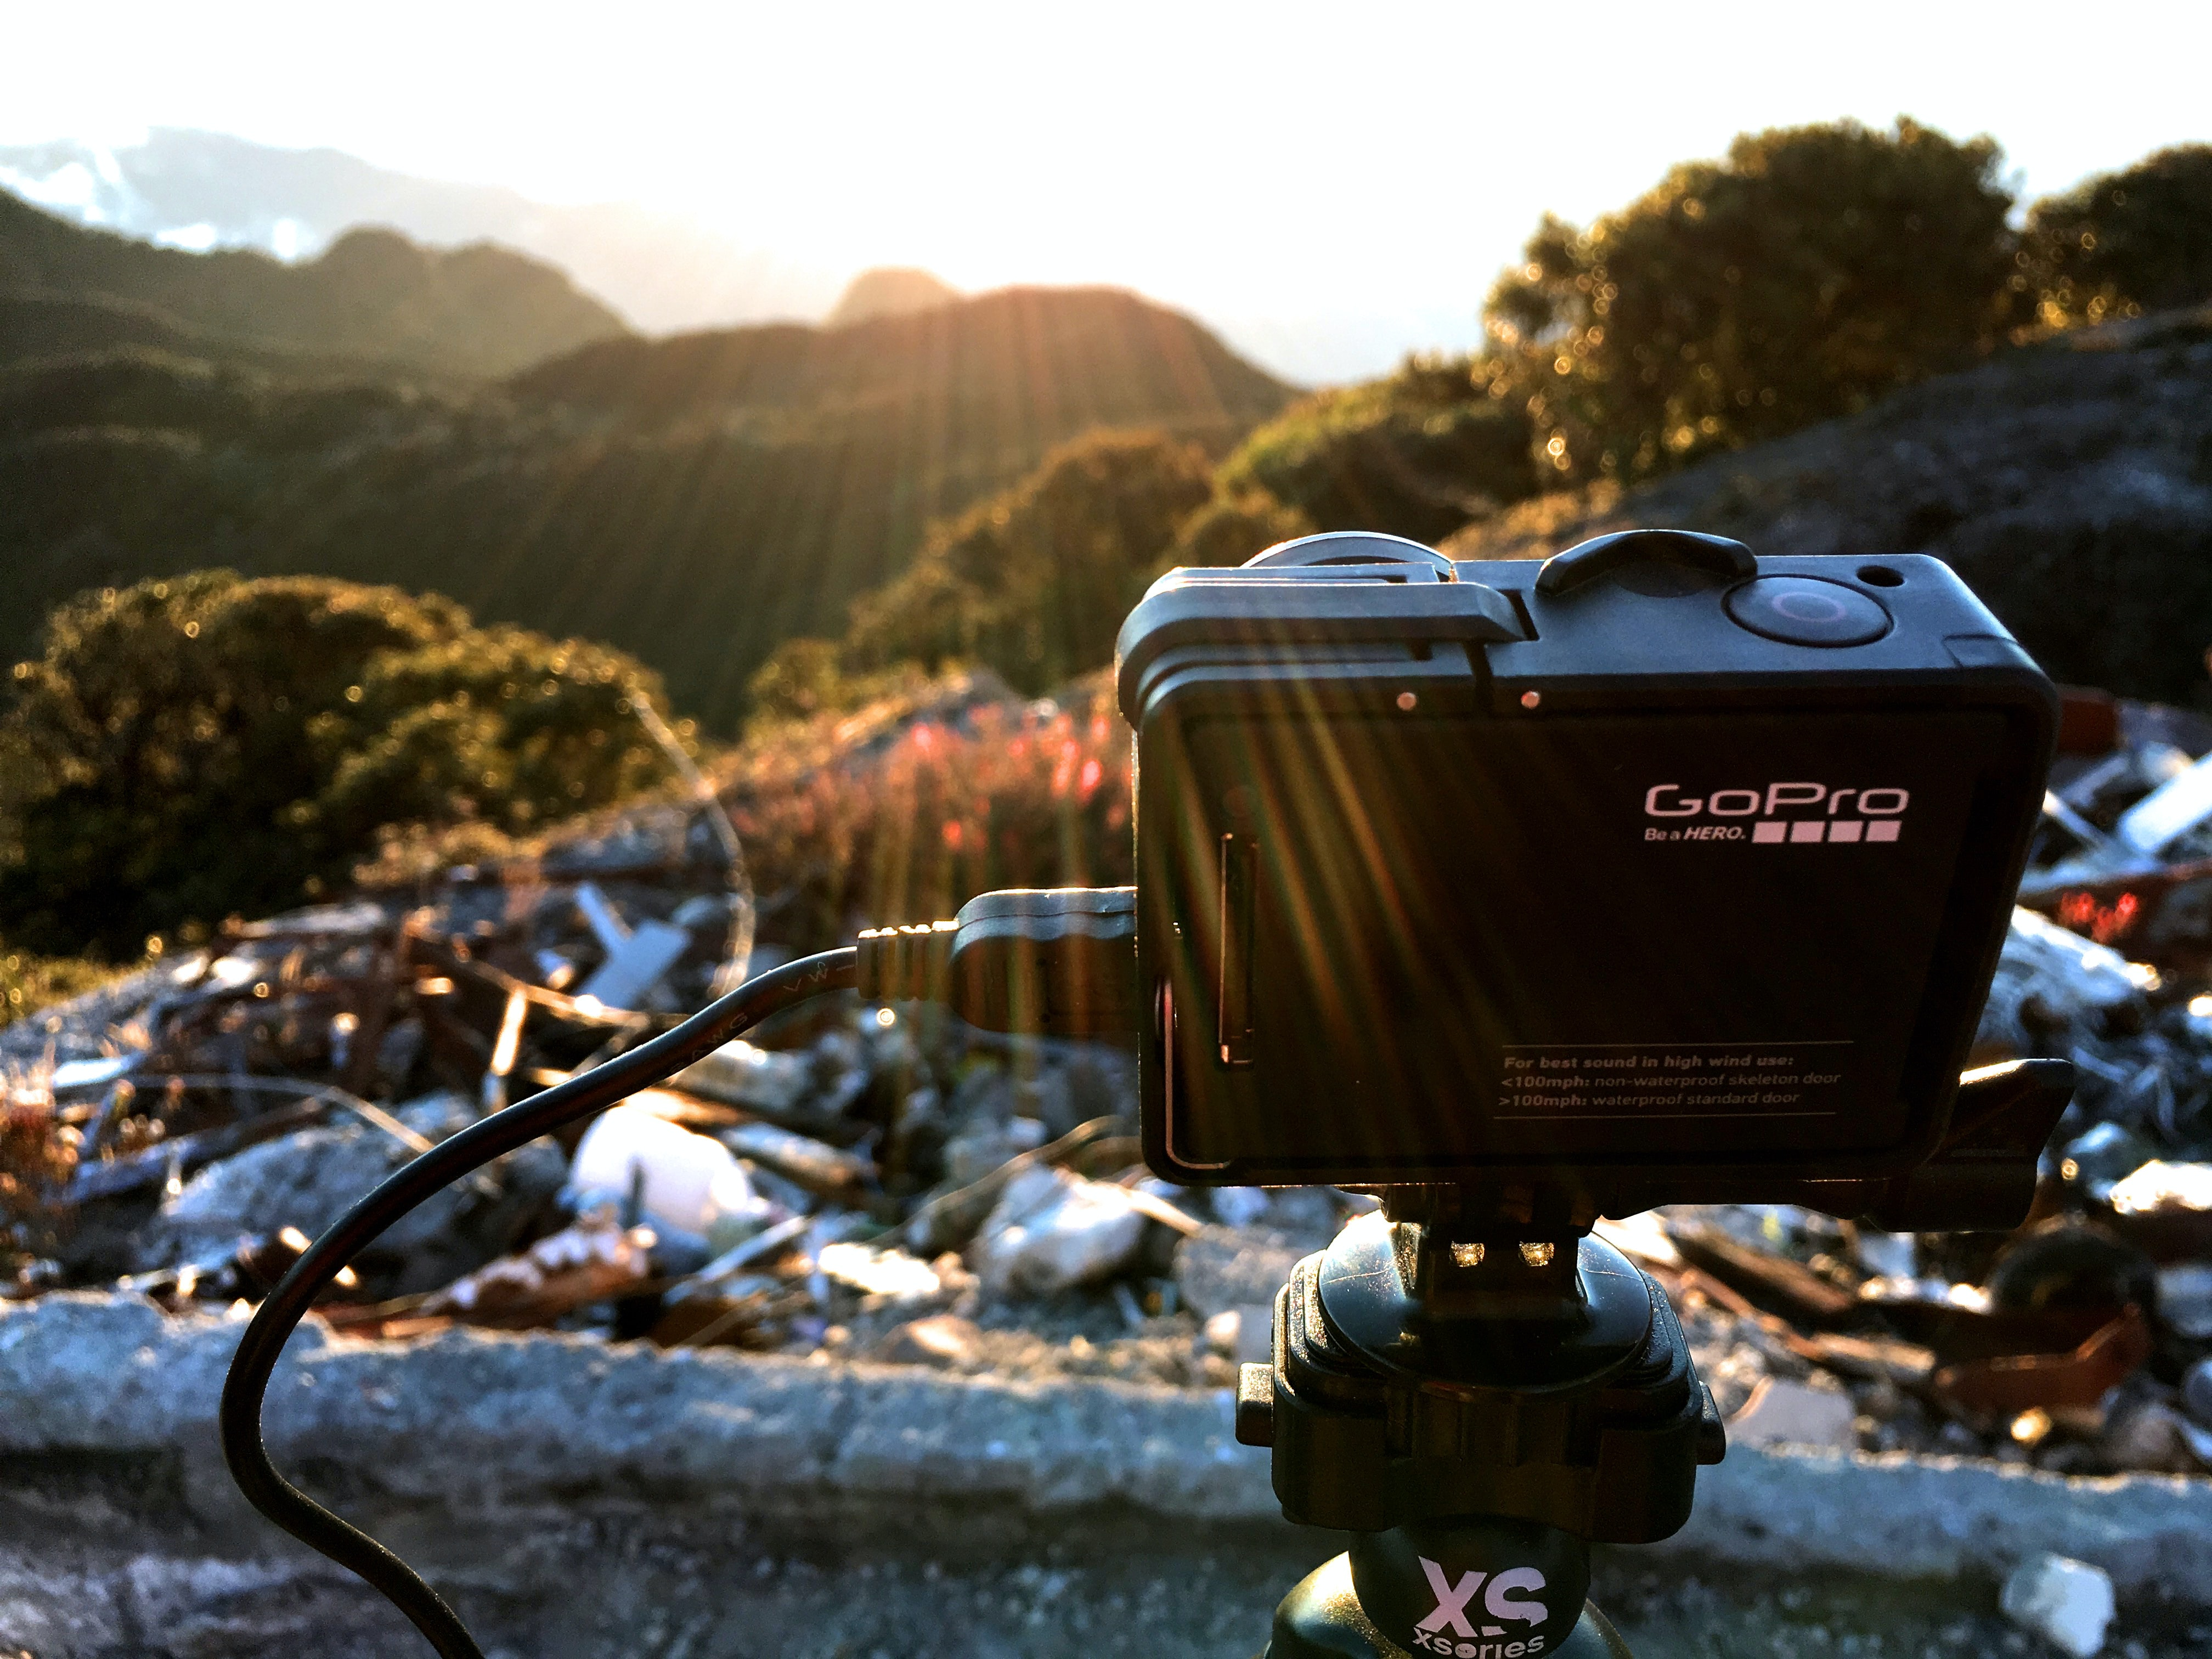 A GoPro camera set up on a tripod in a mountain area.